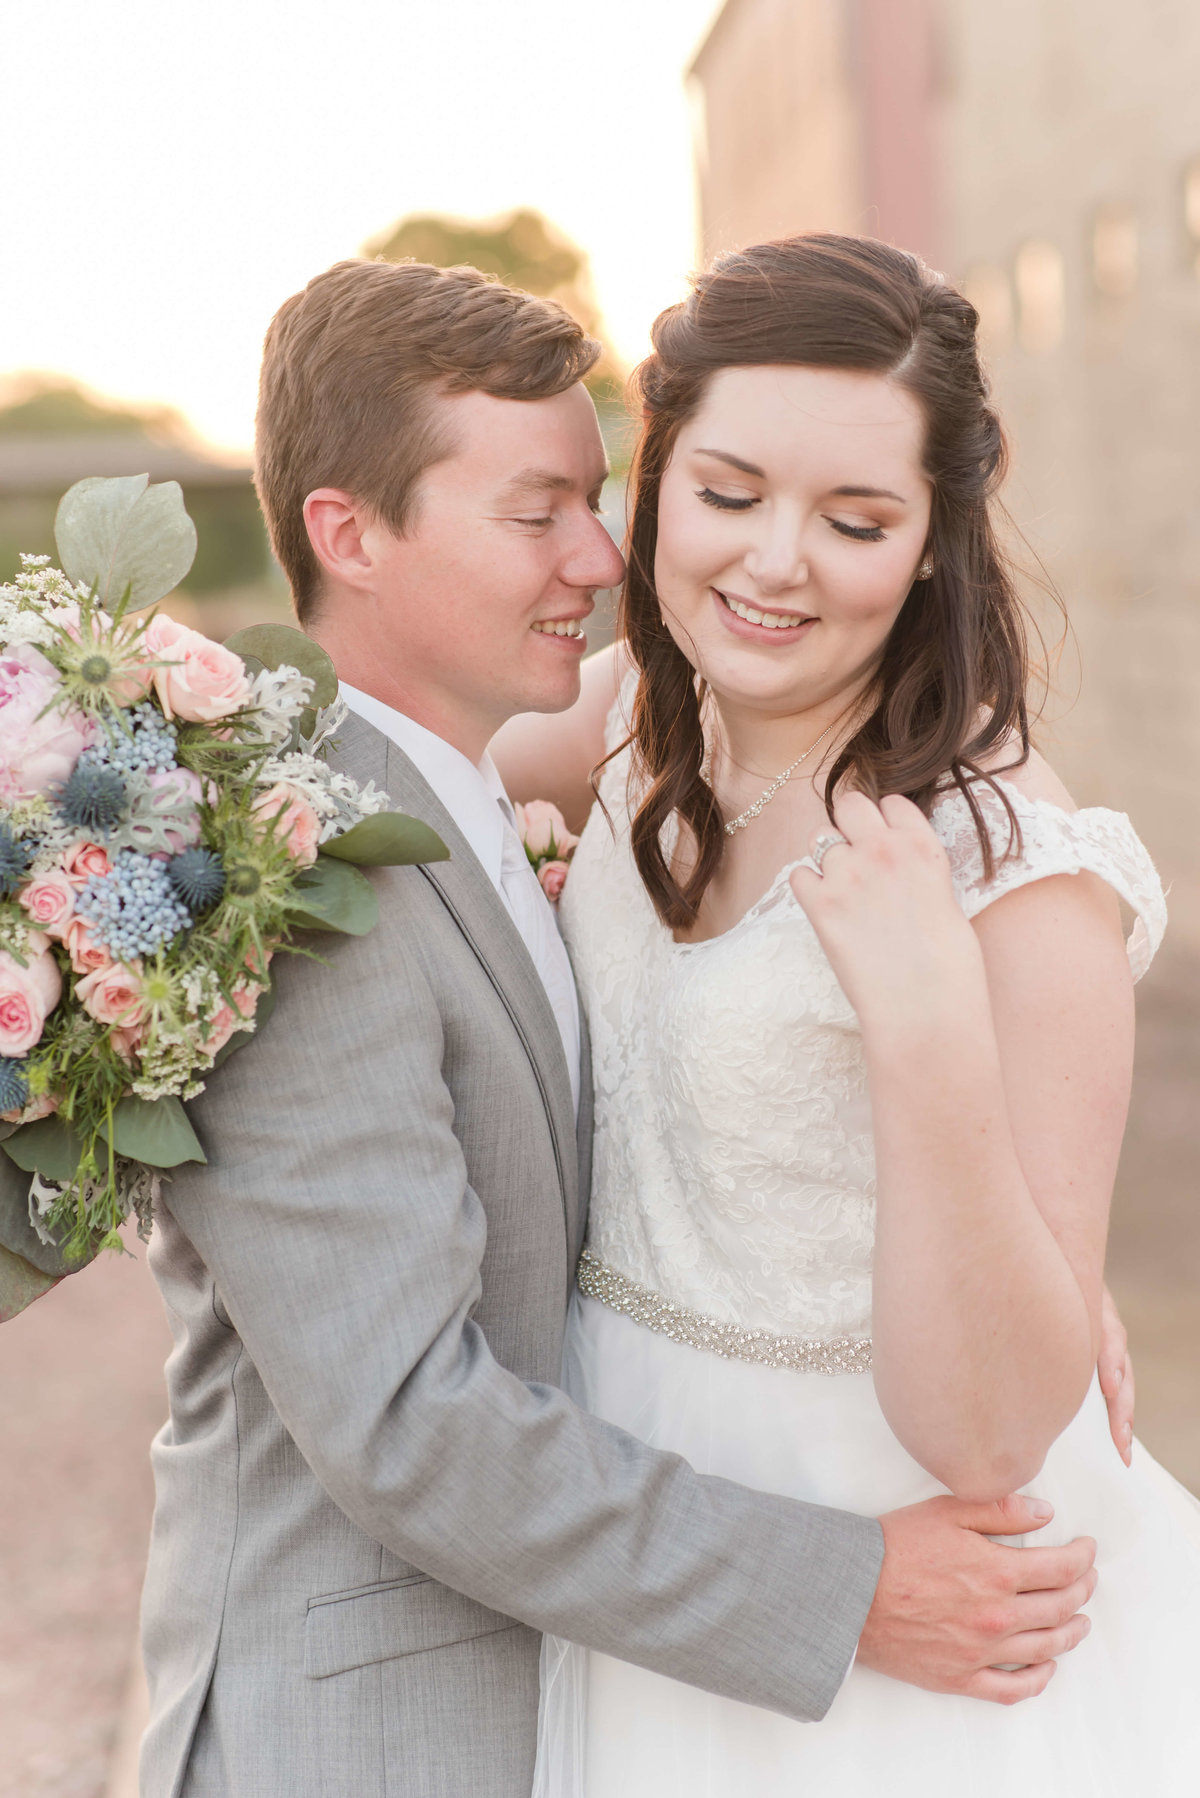 KobusAndJenna_Married_EmmaChristinePhotography_188